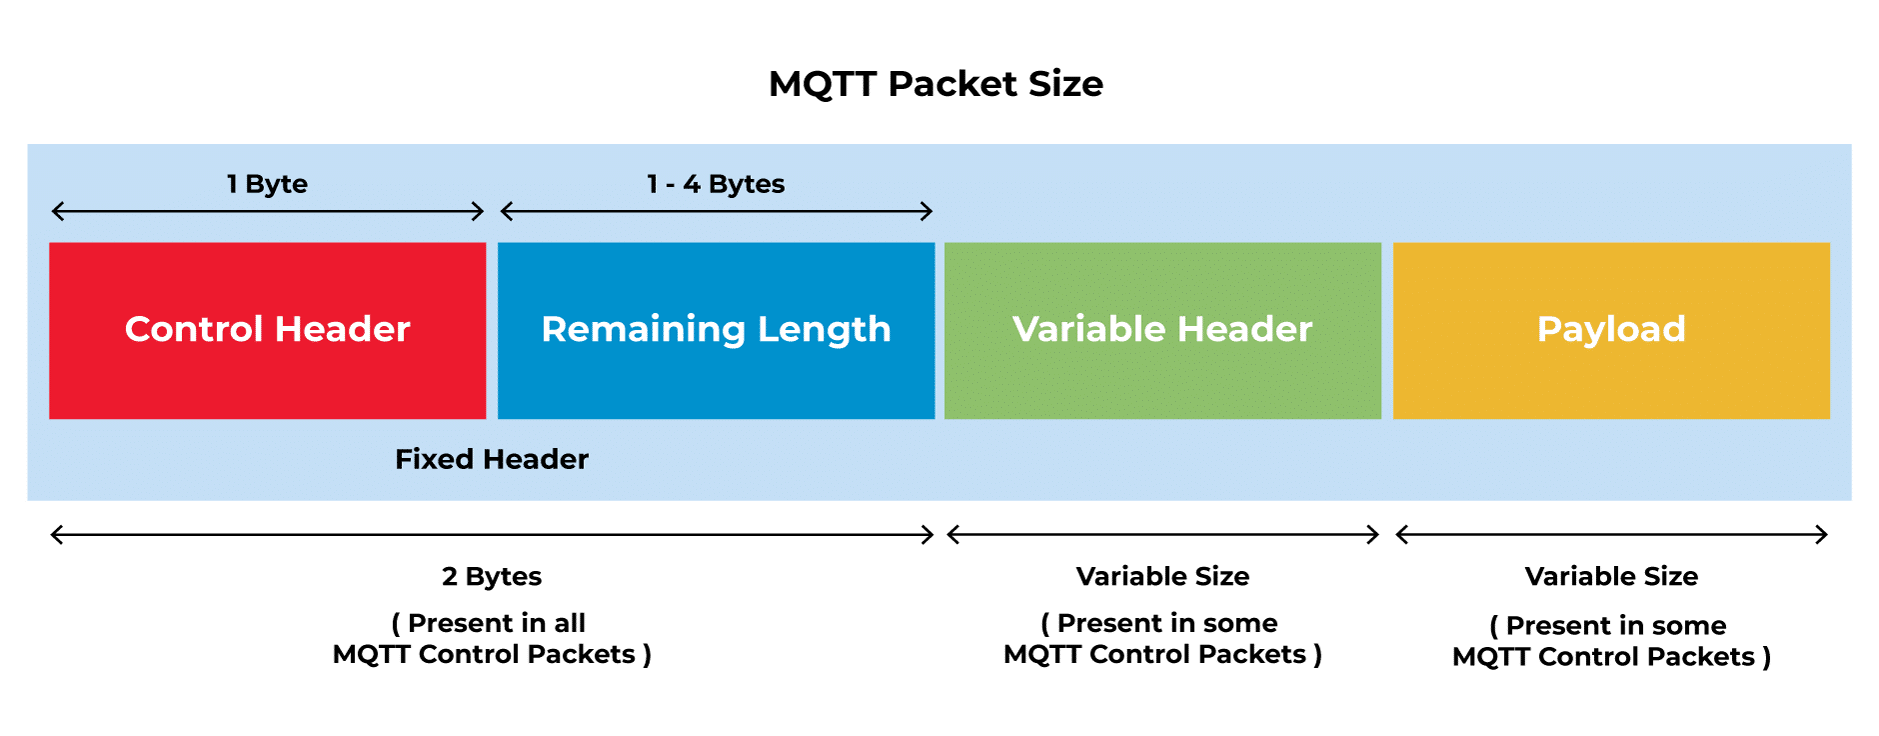 MQTT Packet size